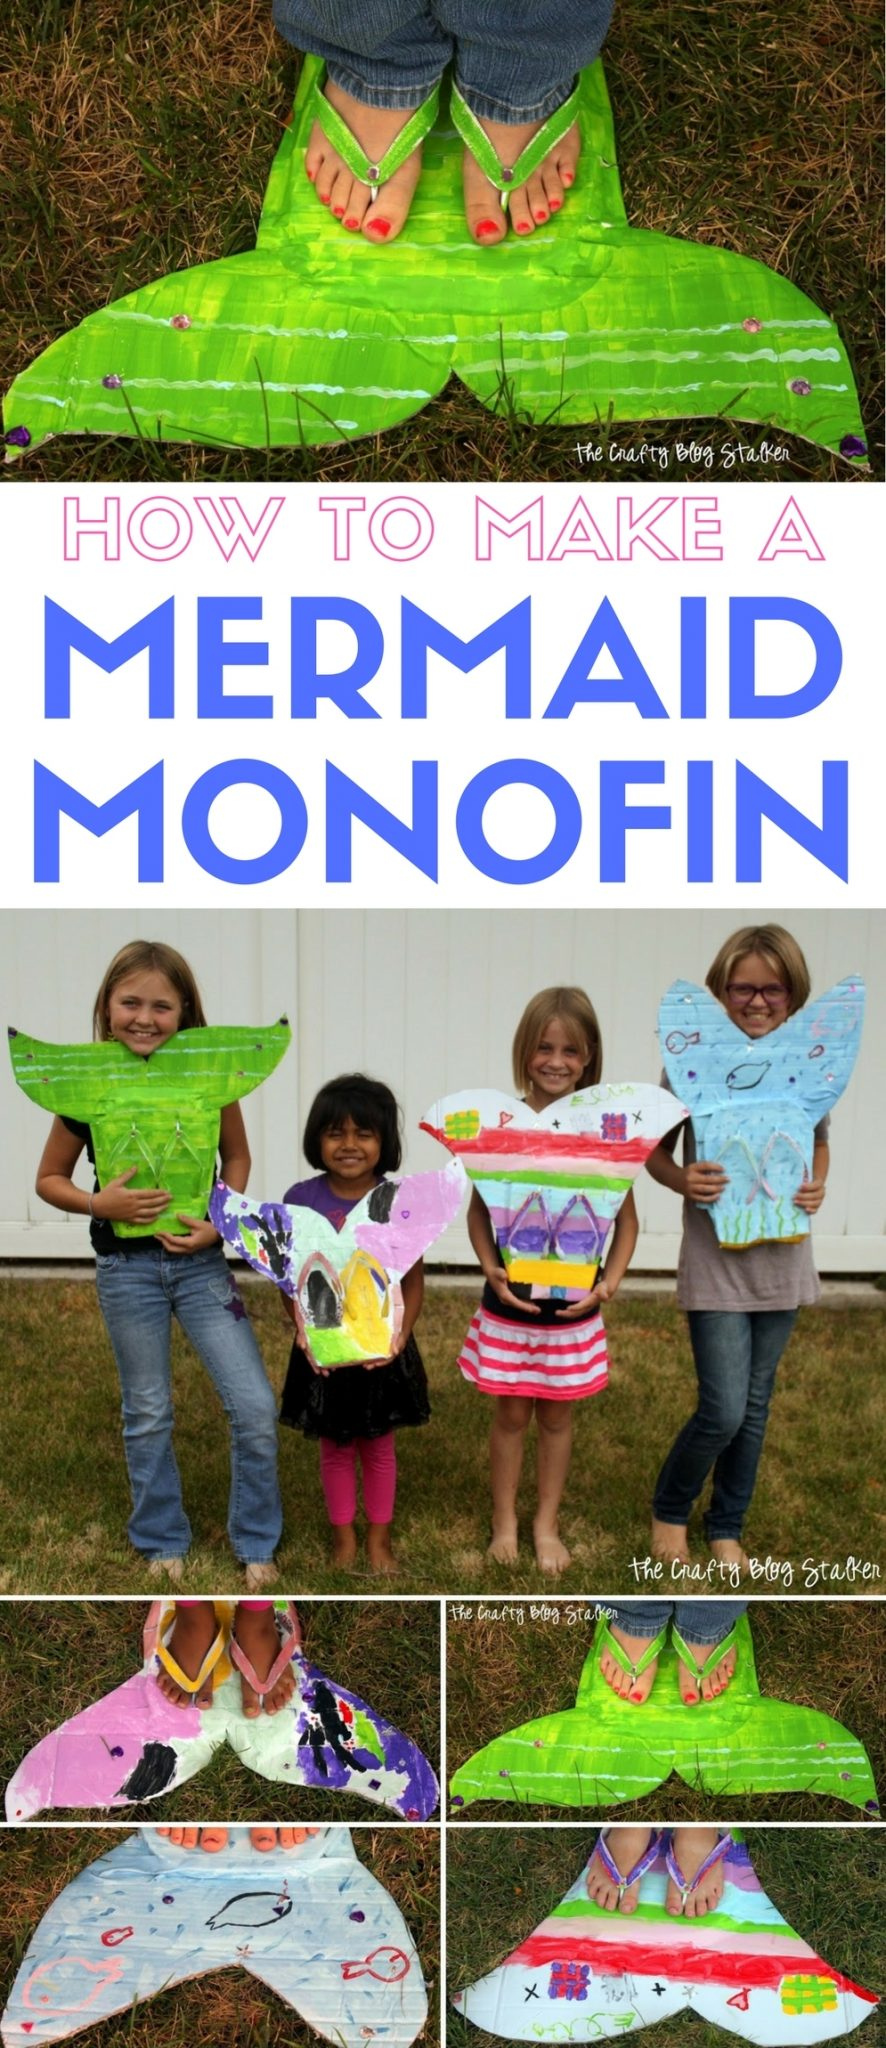 Learn how to make a mermaid monofin. Inspired by The Little Mermaid, a simple DIY craft tutorial idea for pretend play and dress up.